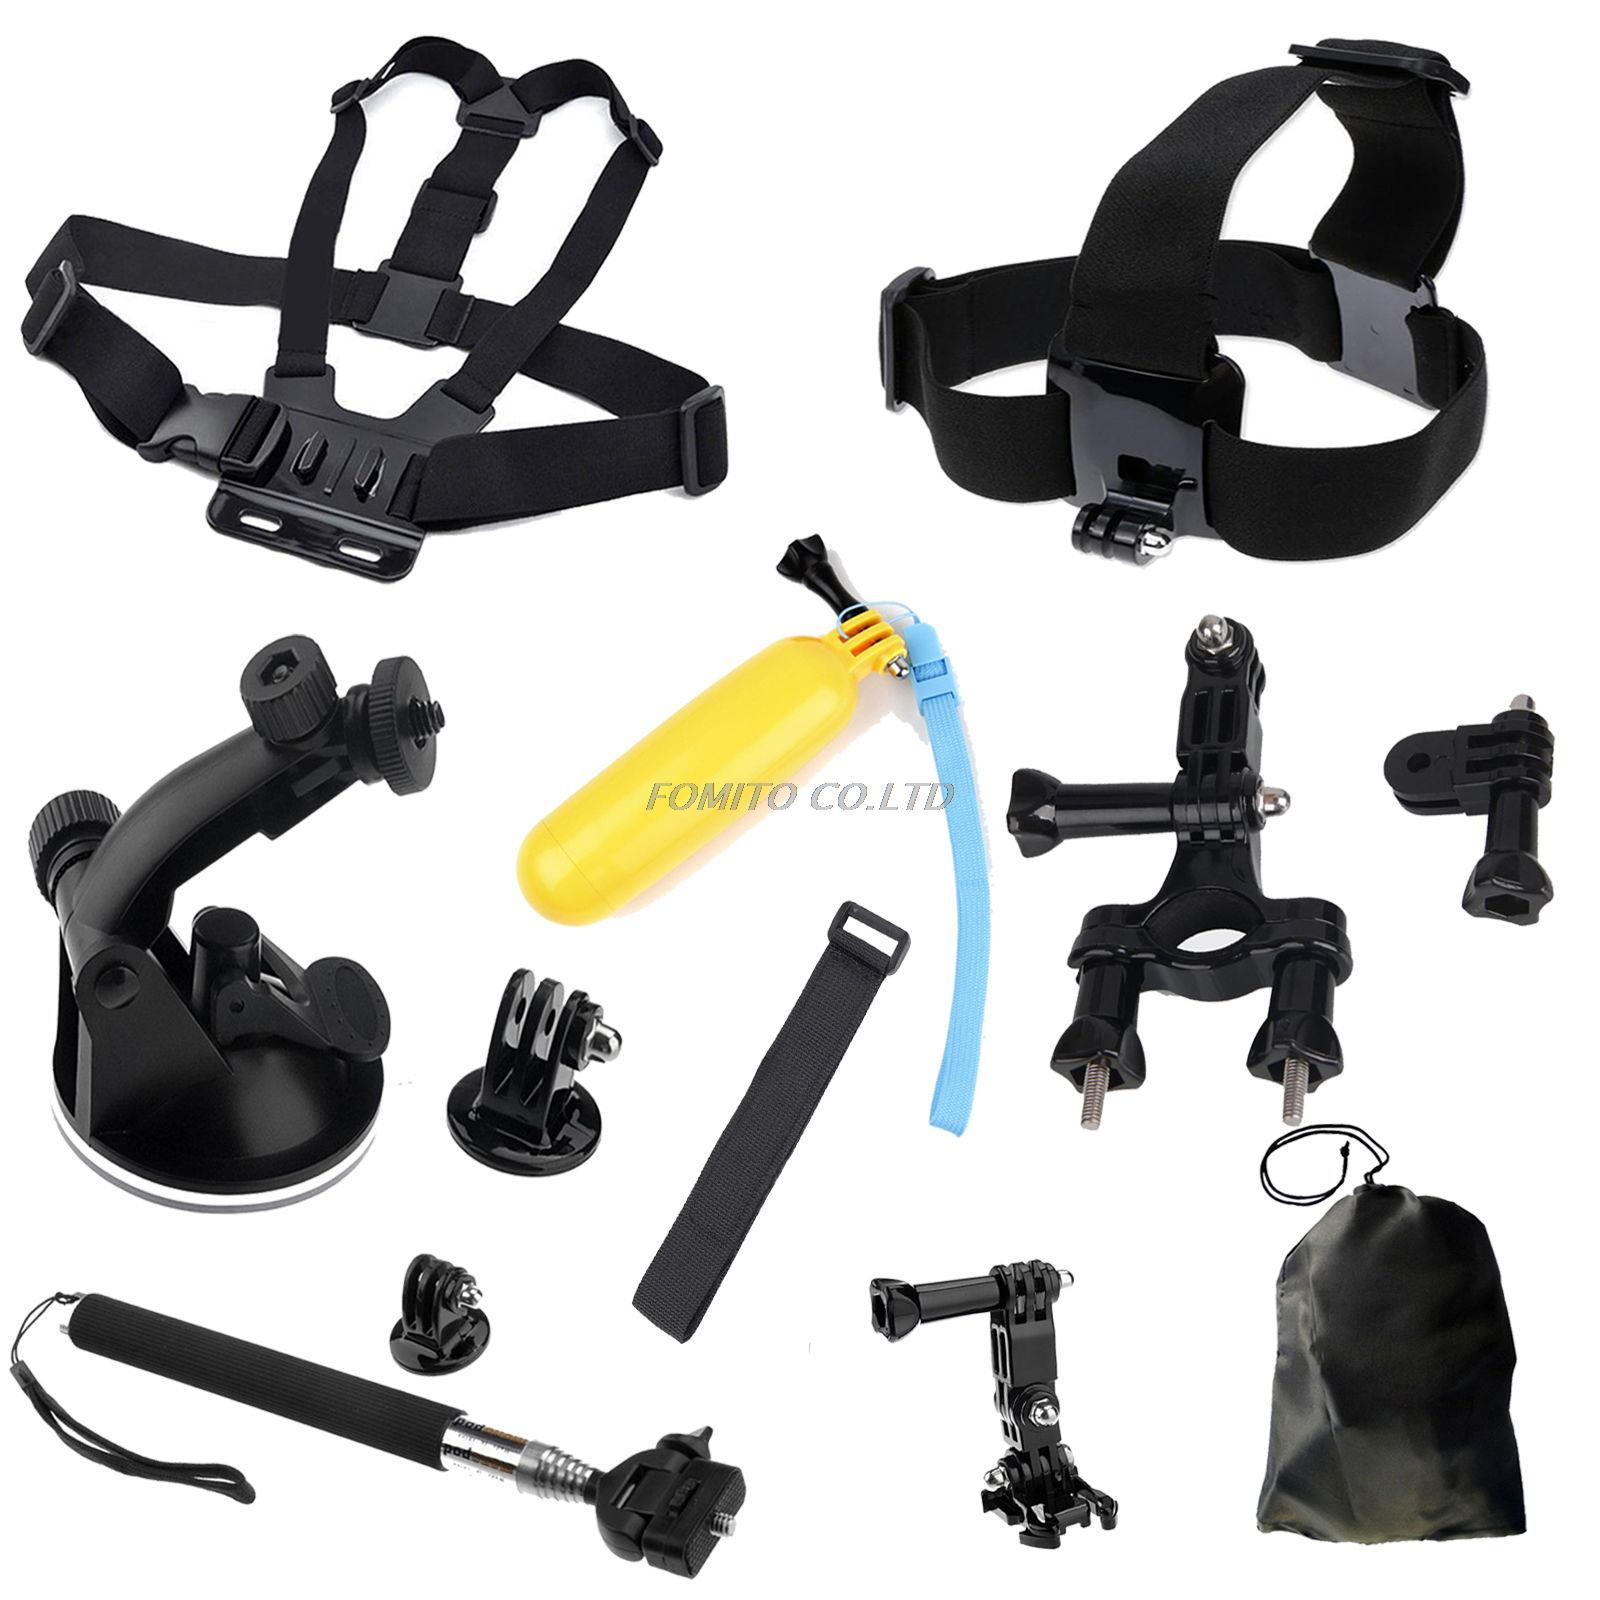 Chesty Chest Head Mount Strap Floating Grip Tripod Monopod Ski Pole 9 In 1